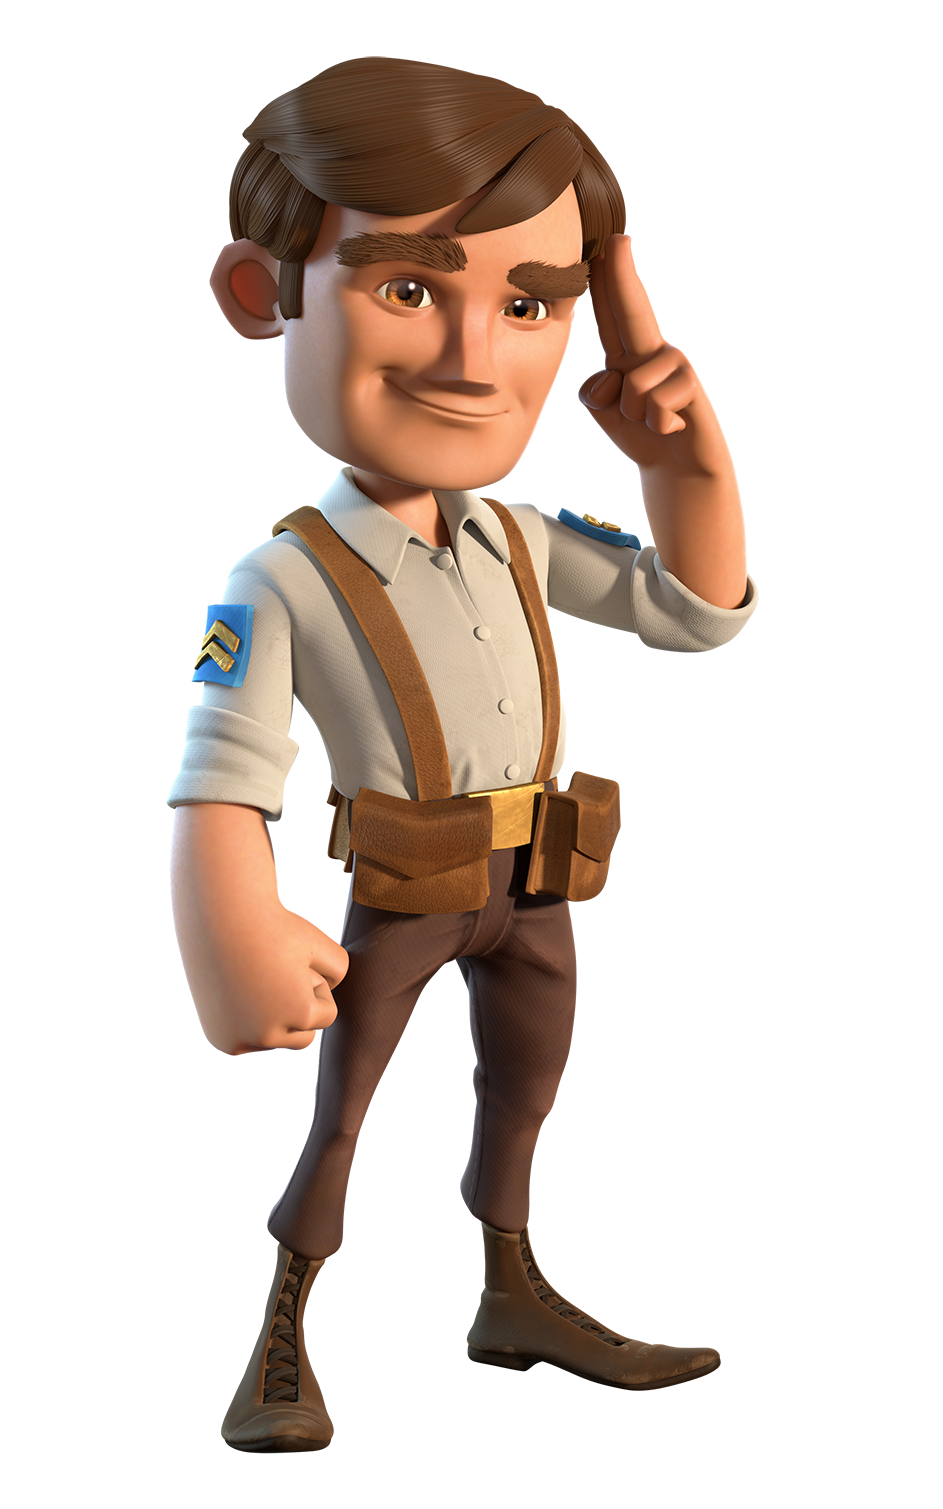 boom beach - Google Search